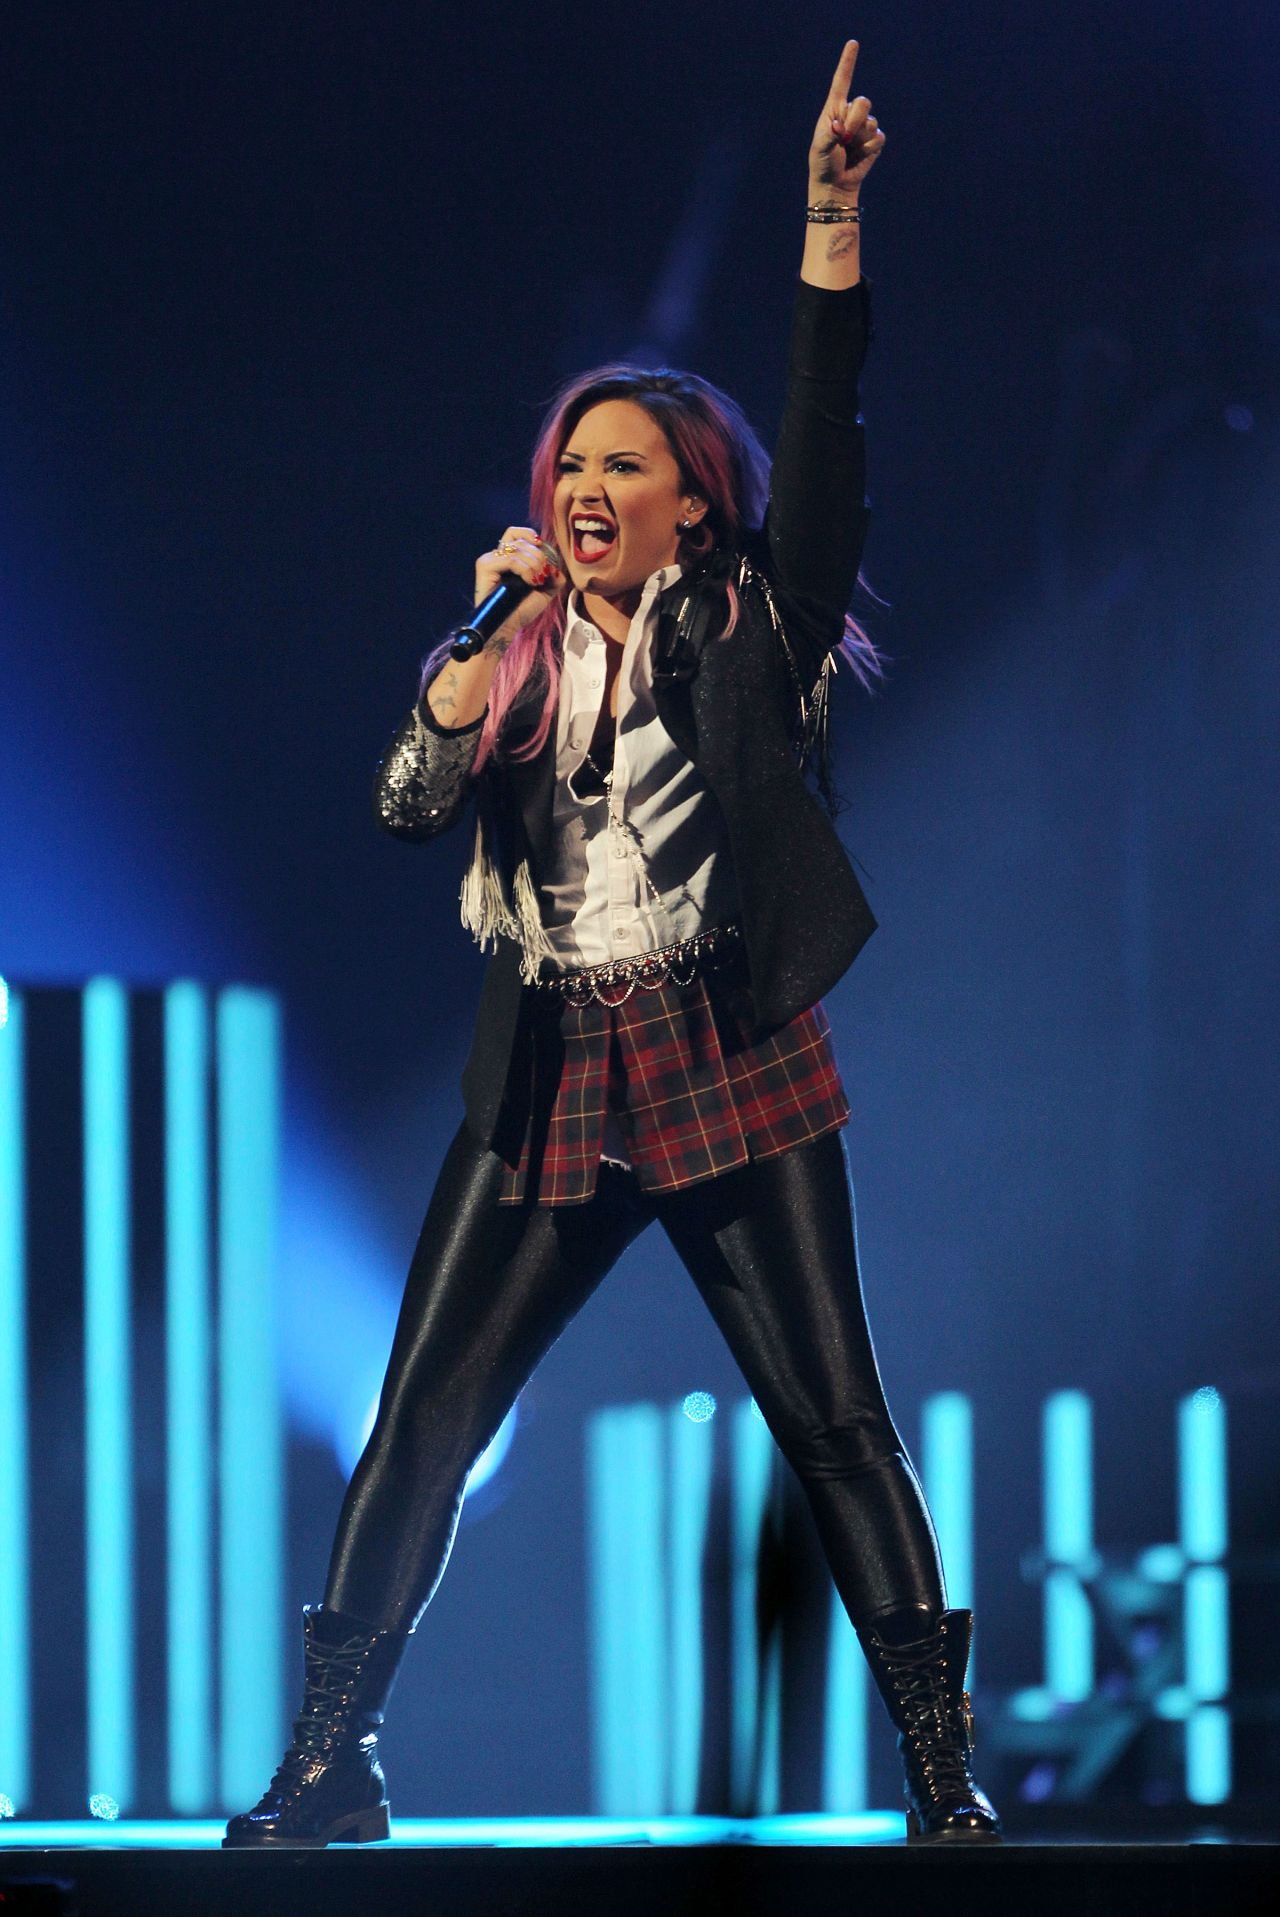 Demi Lovato - Neon Lights Concert Tour at the Honda Center in Anaheim, February 2014